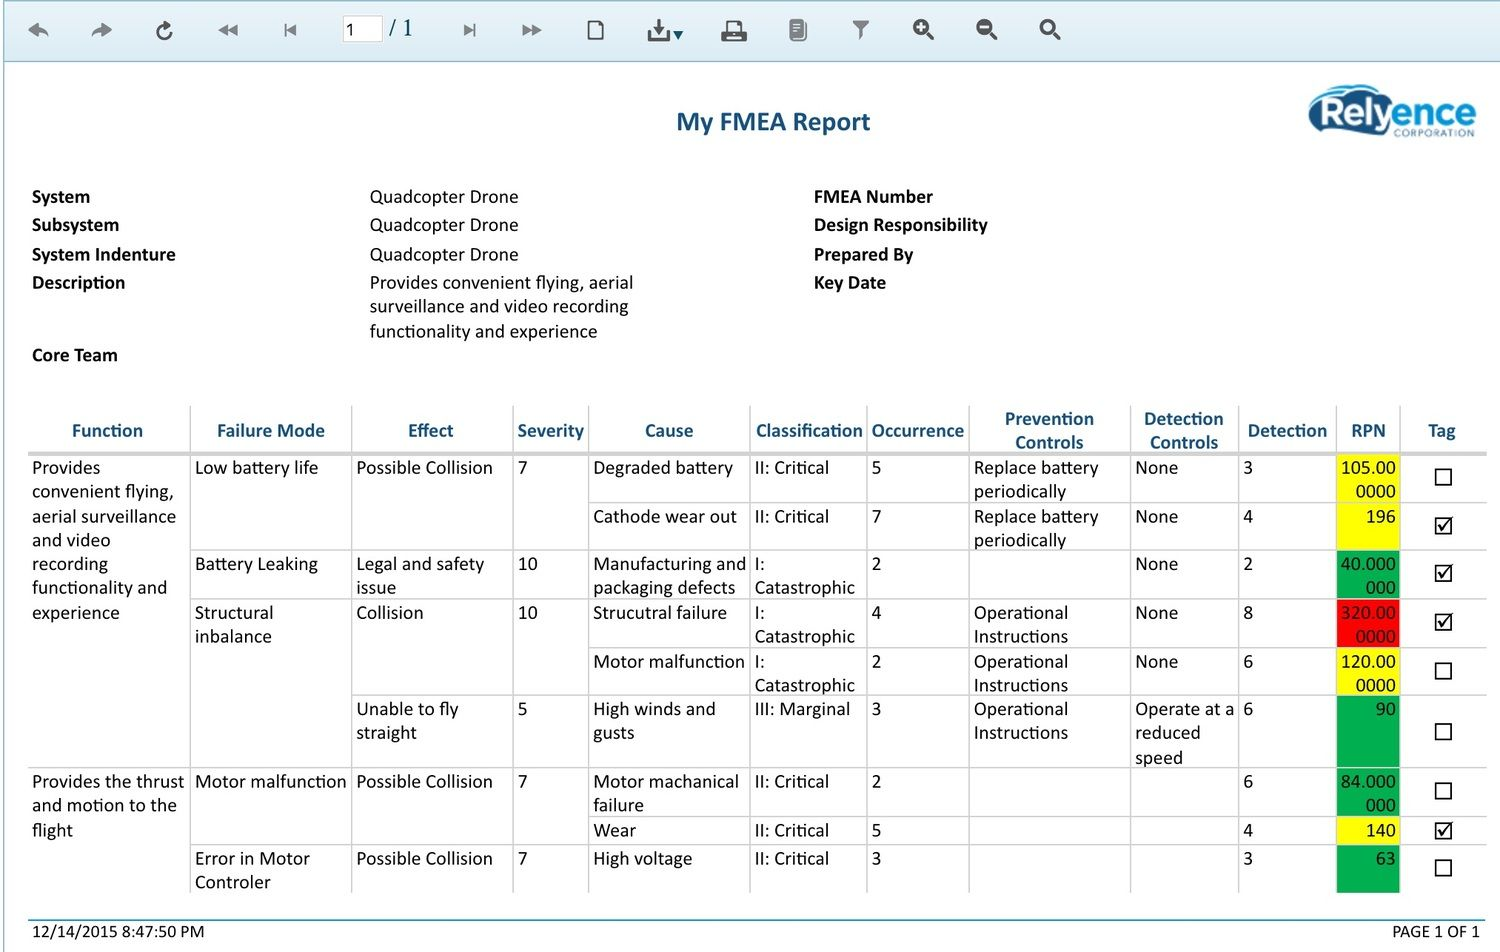 Fmea And Fmeca Customizable Reports Provide Visibility To Aid In Process And Design Improvement